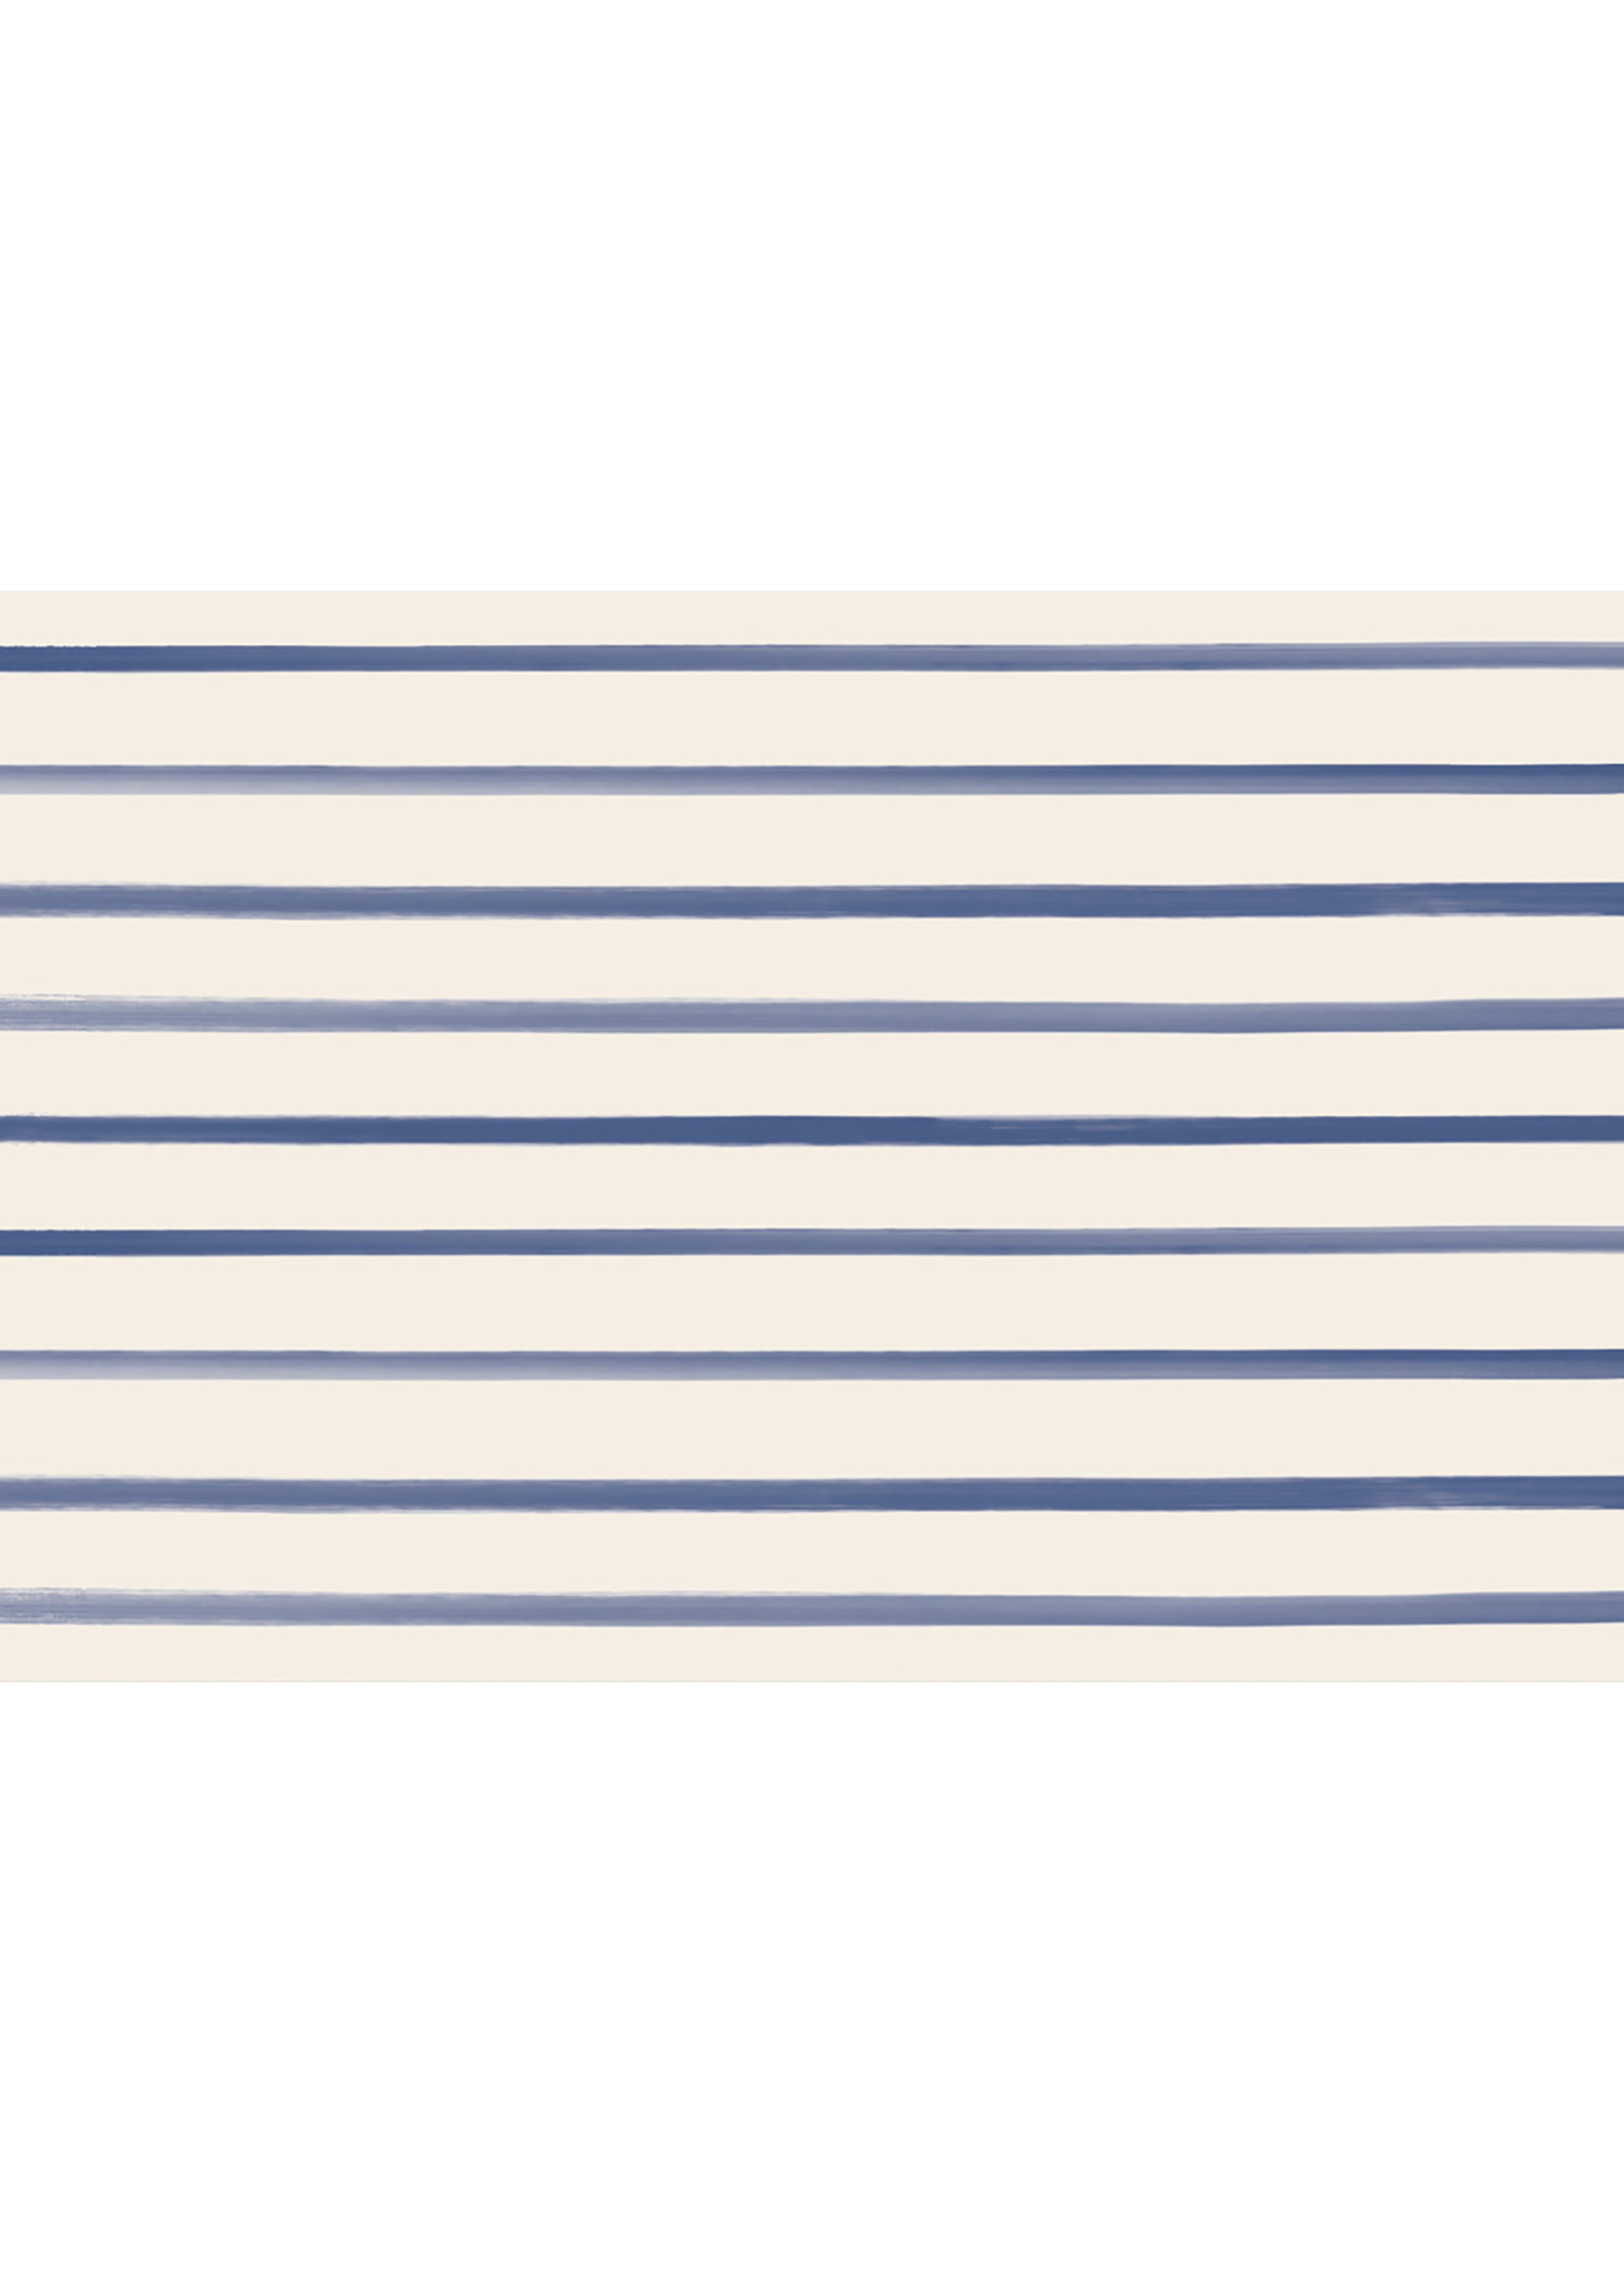 Hester & Cook Paper Placemats - Navy Stripe (24 sheets)